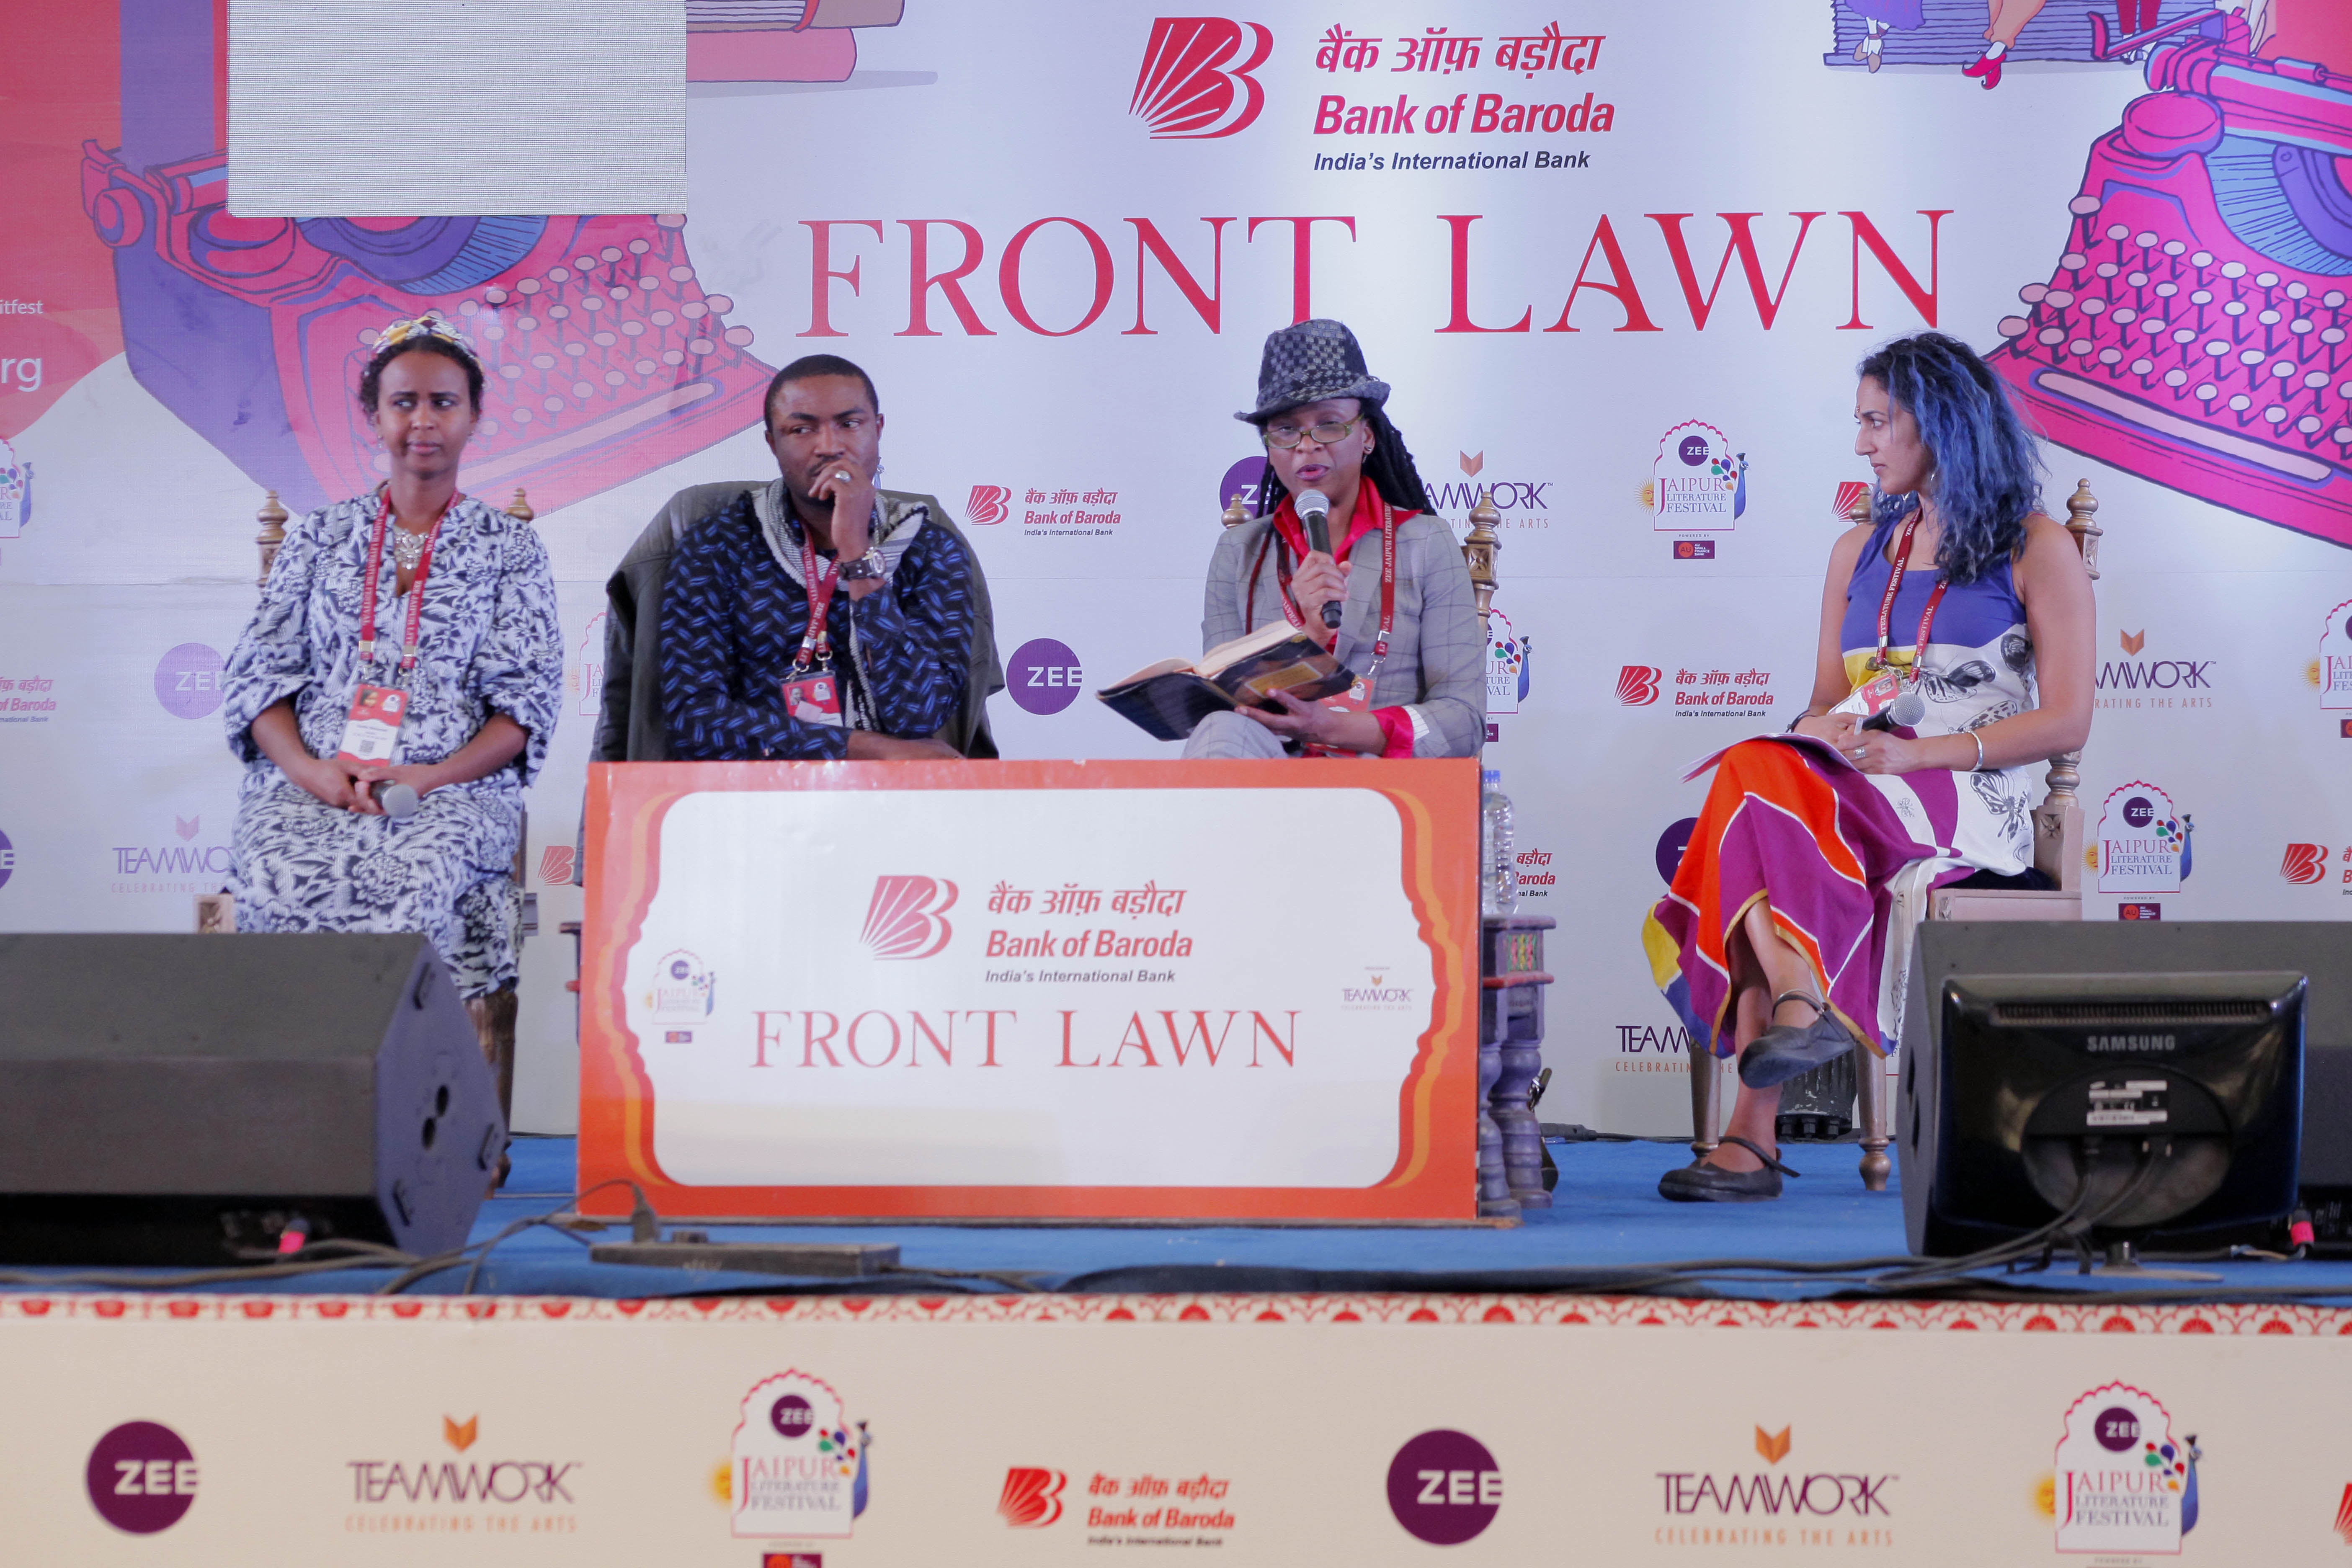 Abubakar Adam Ibrahim in conversation with Chika Unigwe, Nadifa Mohamed and Abeer Y Hoque at the Jaipur Literature Festival in January